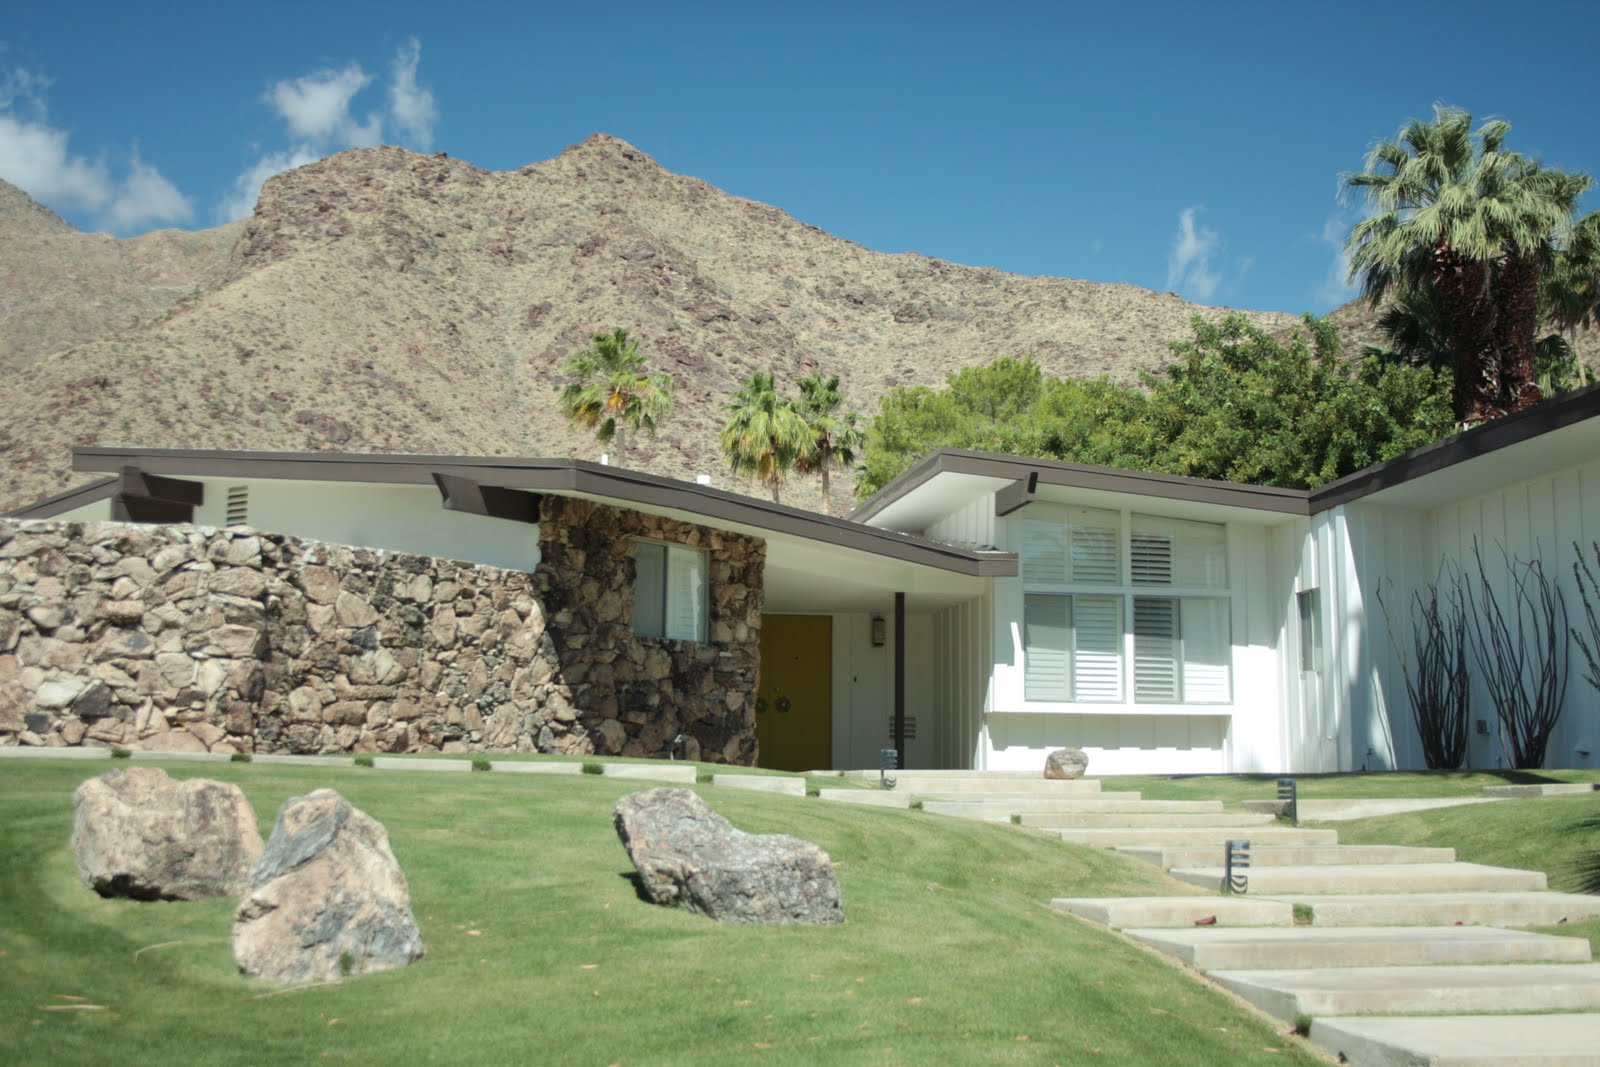 A day in the life of mid century modern homes in palm springs for New modern homes palm springs